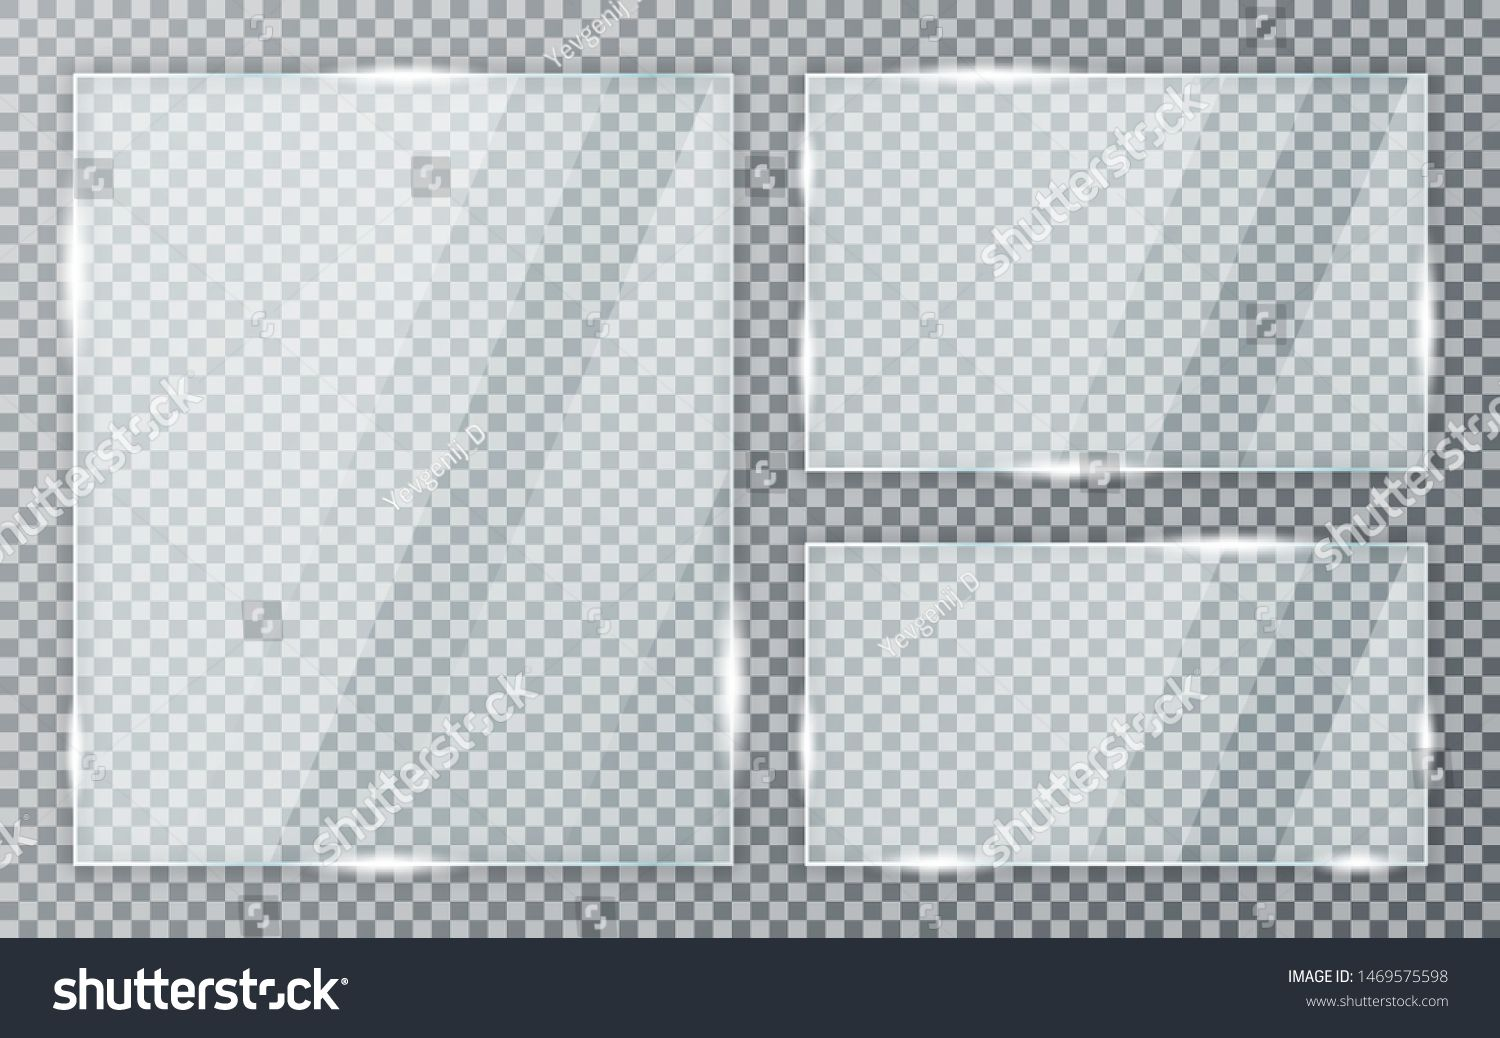 Transparent Texture Glass Button Material Transparent Texture Glass Png Transparent Clipart Image And Psd File For Free Download Glass Buttons Glass Texture Psd Texture